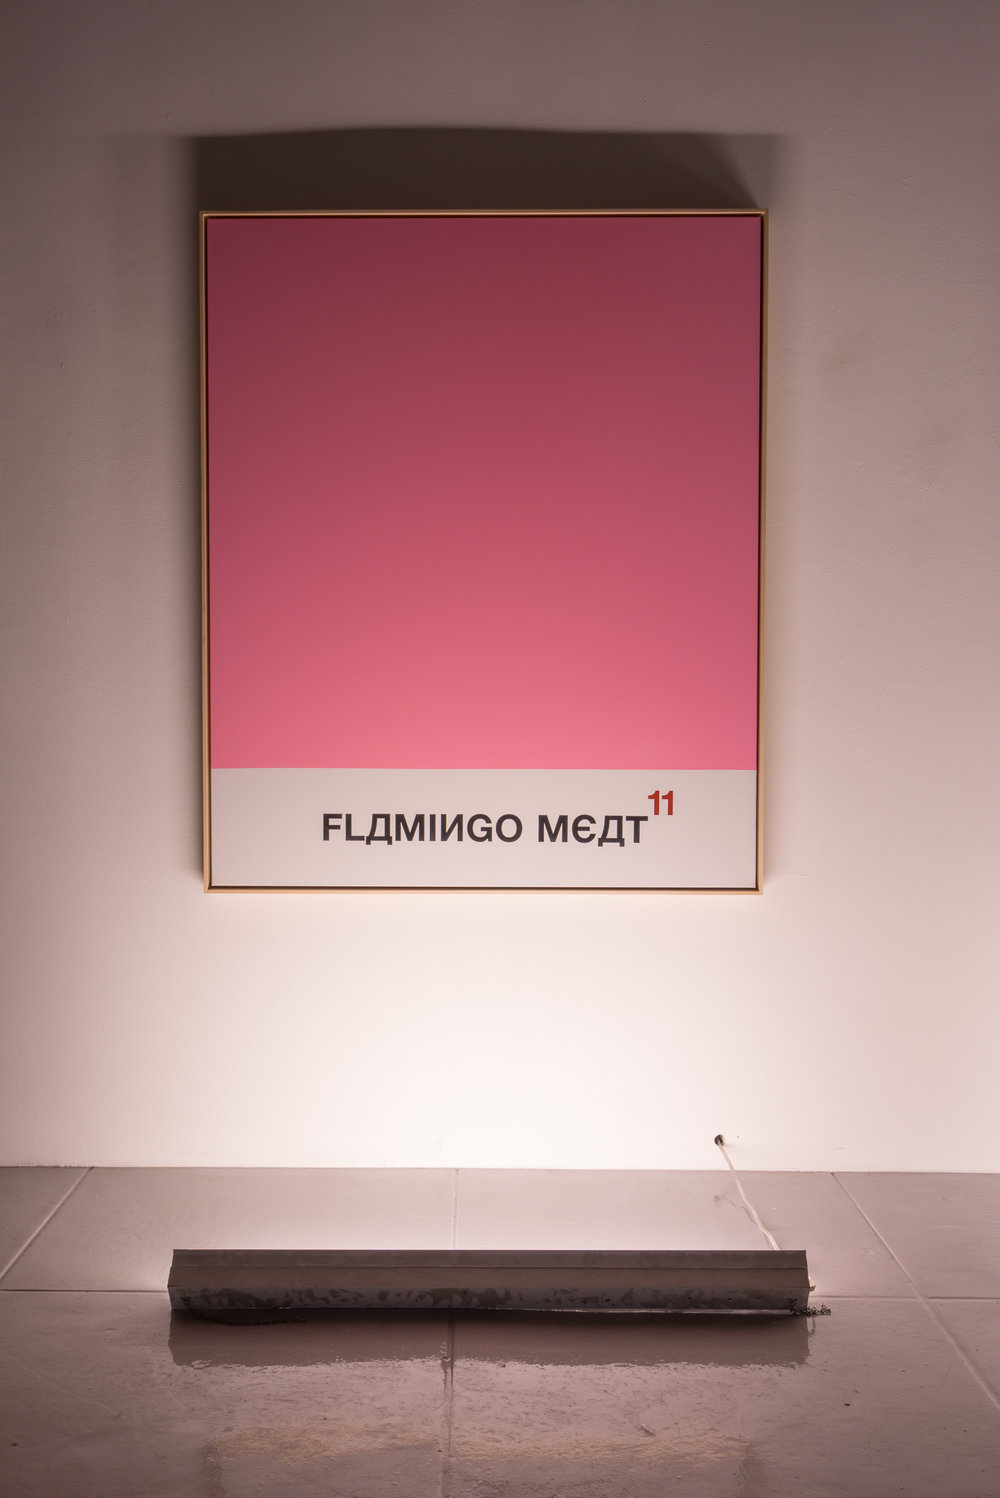 FLAMINGO MEAT, 2016, Acrylic and spray paint on linen, 63.13 x 52.06 in (160.35h x 132.23w cm)